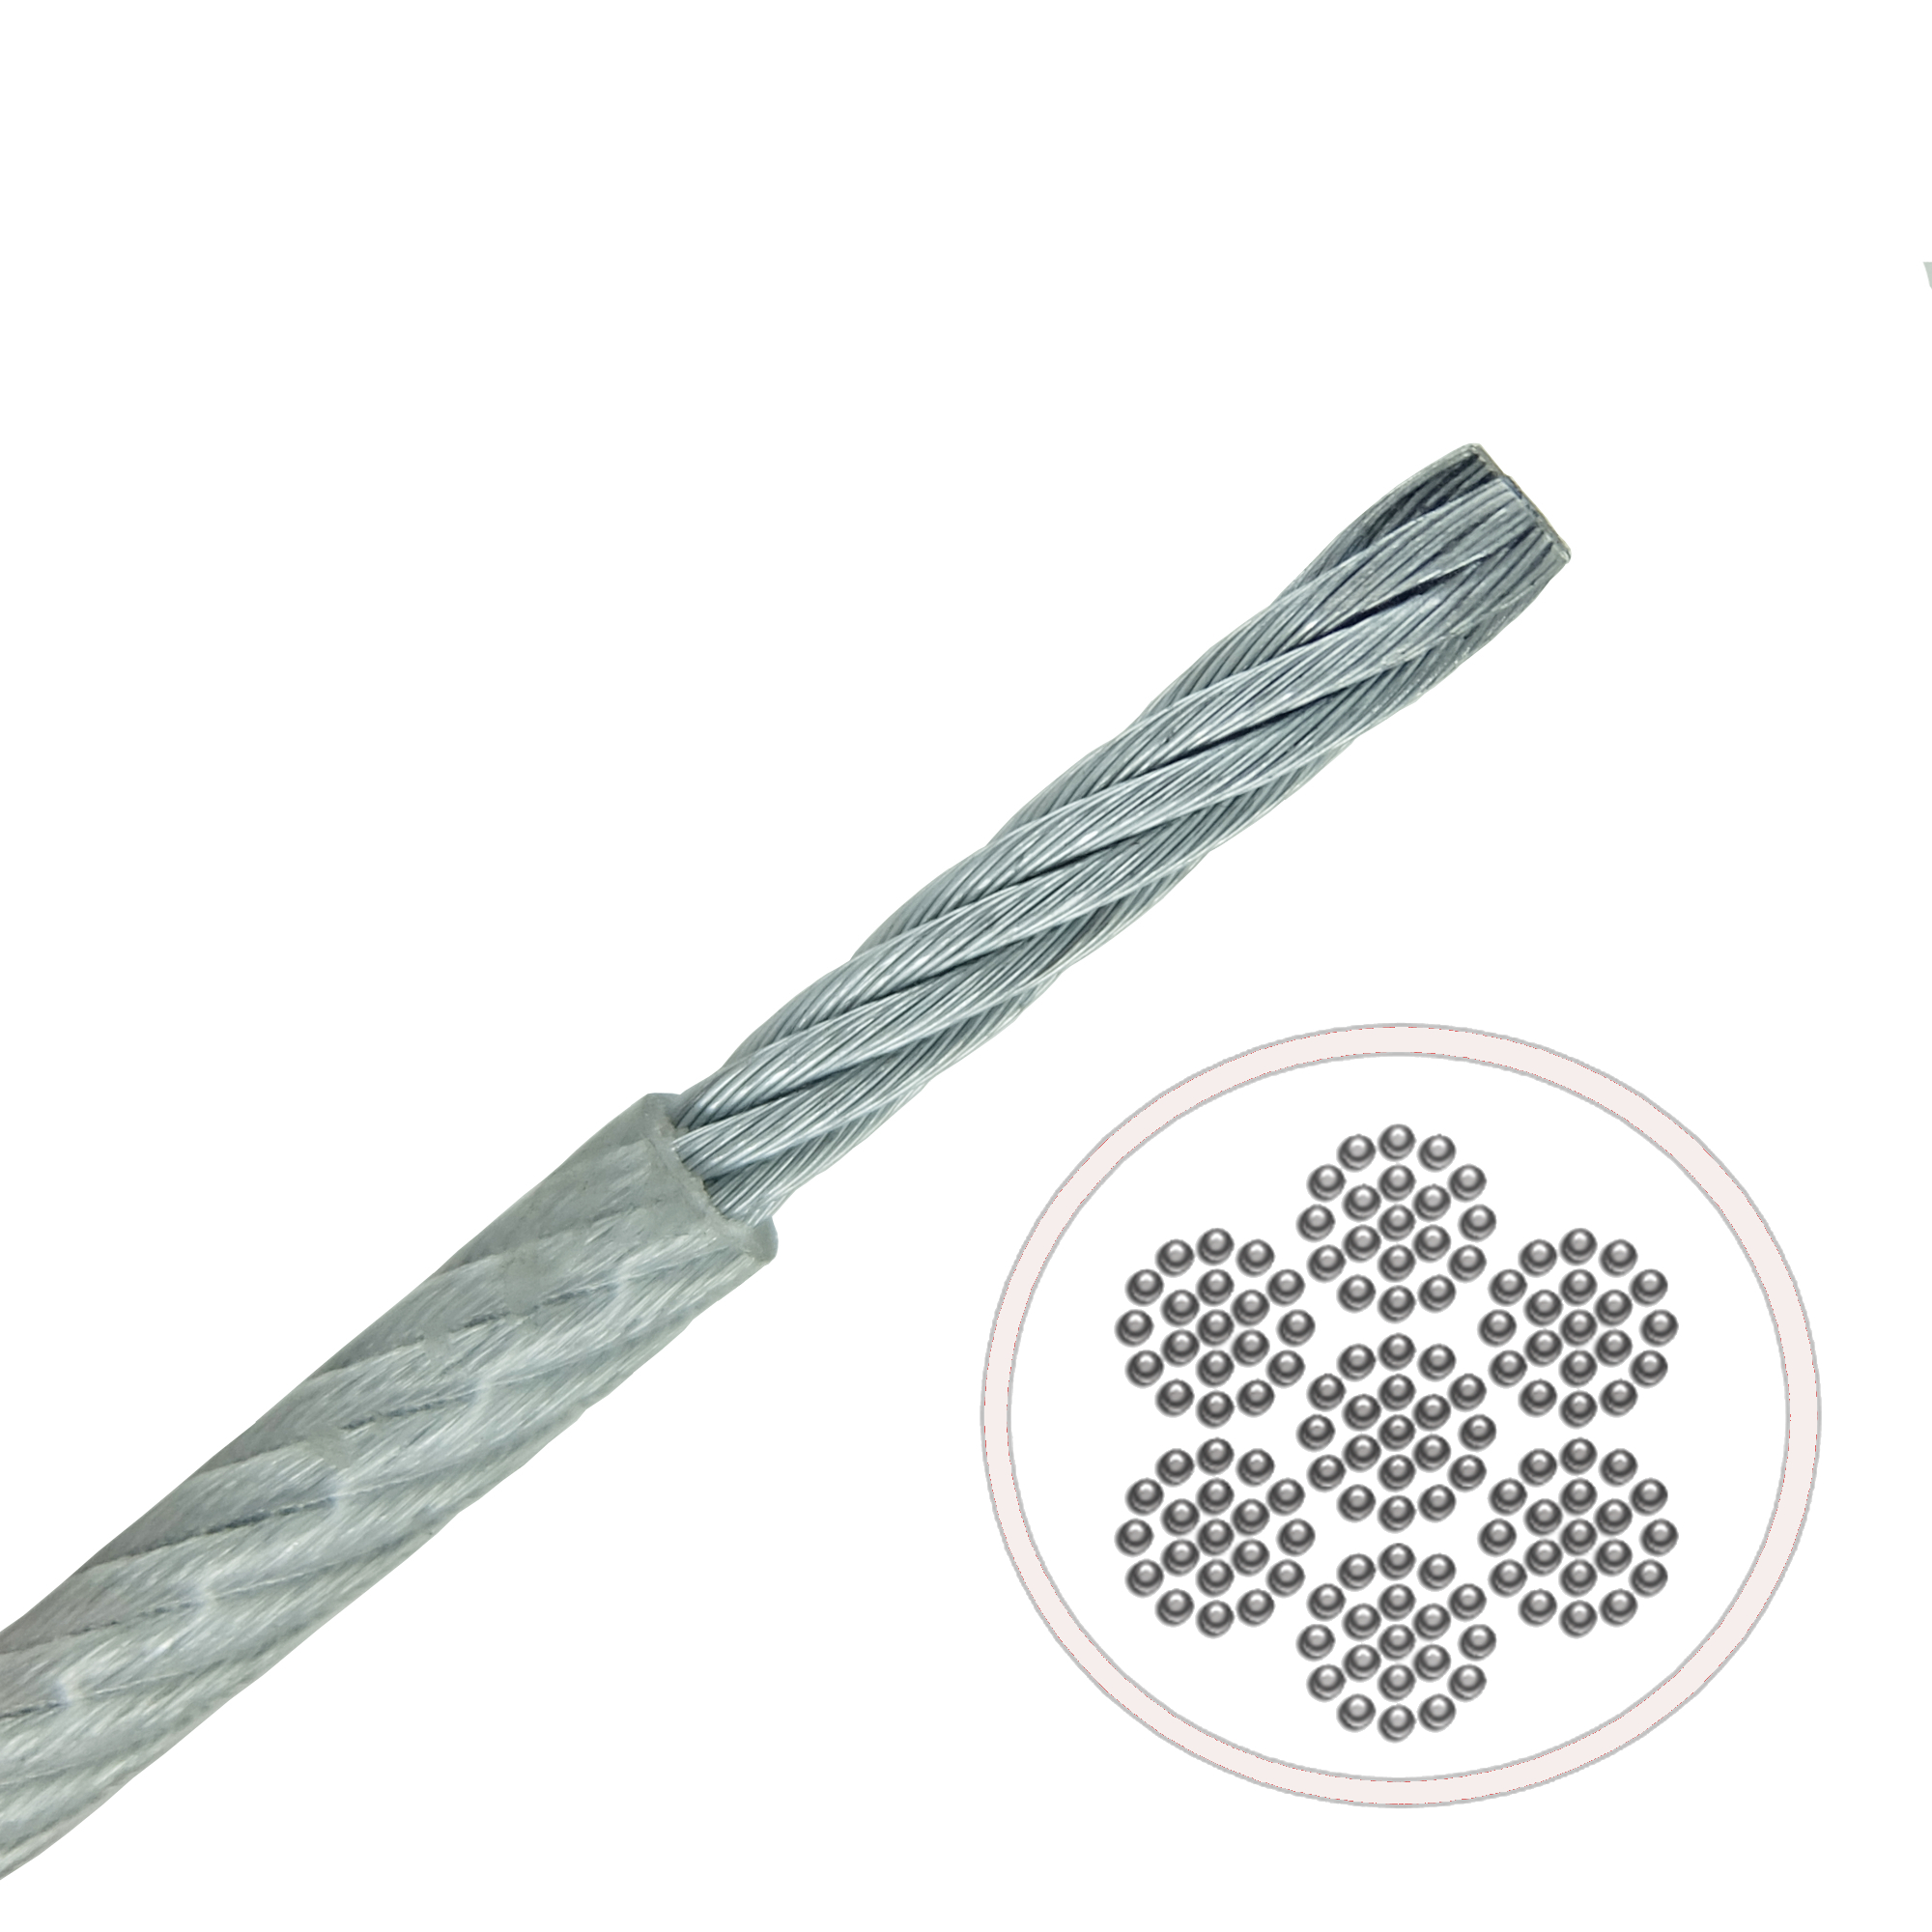 Clear PVC Coated Galvanised Steel Very Flexible 7x19 Cable - 514.000.050